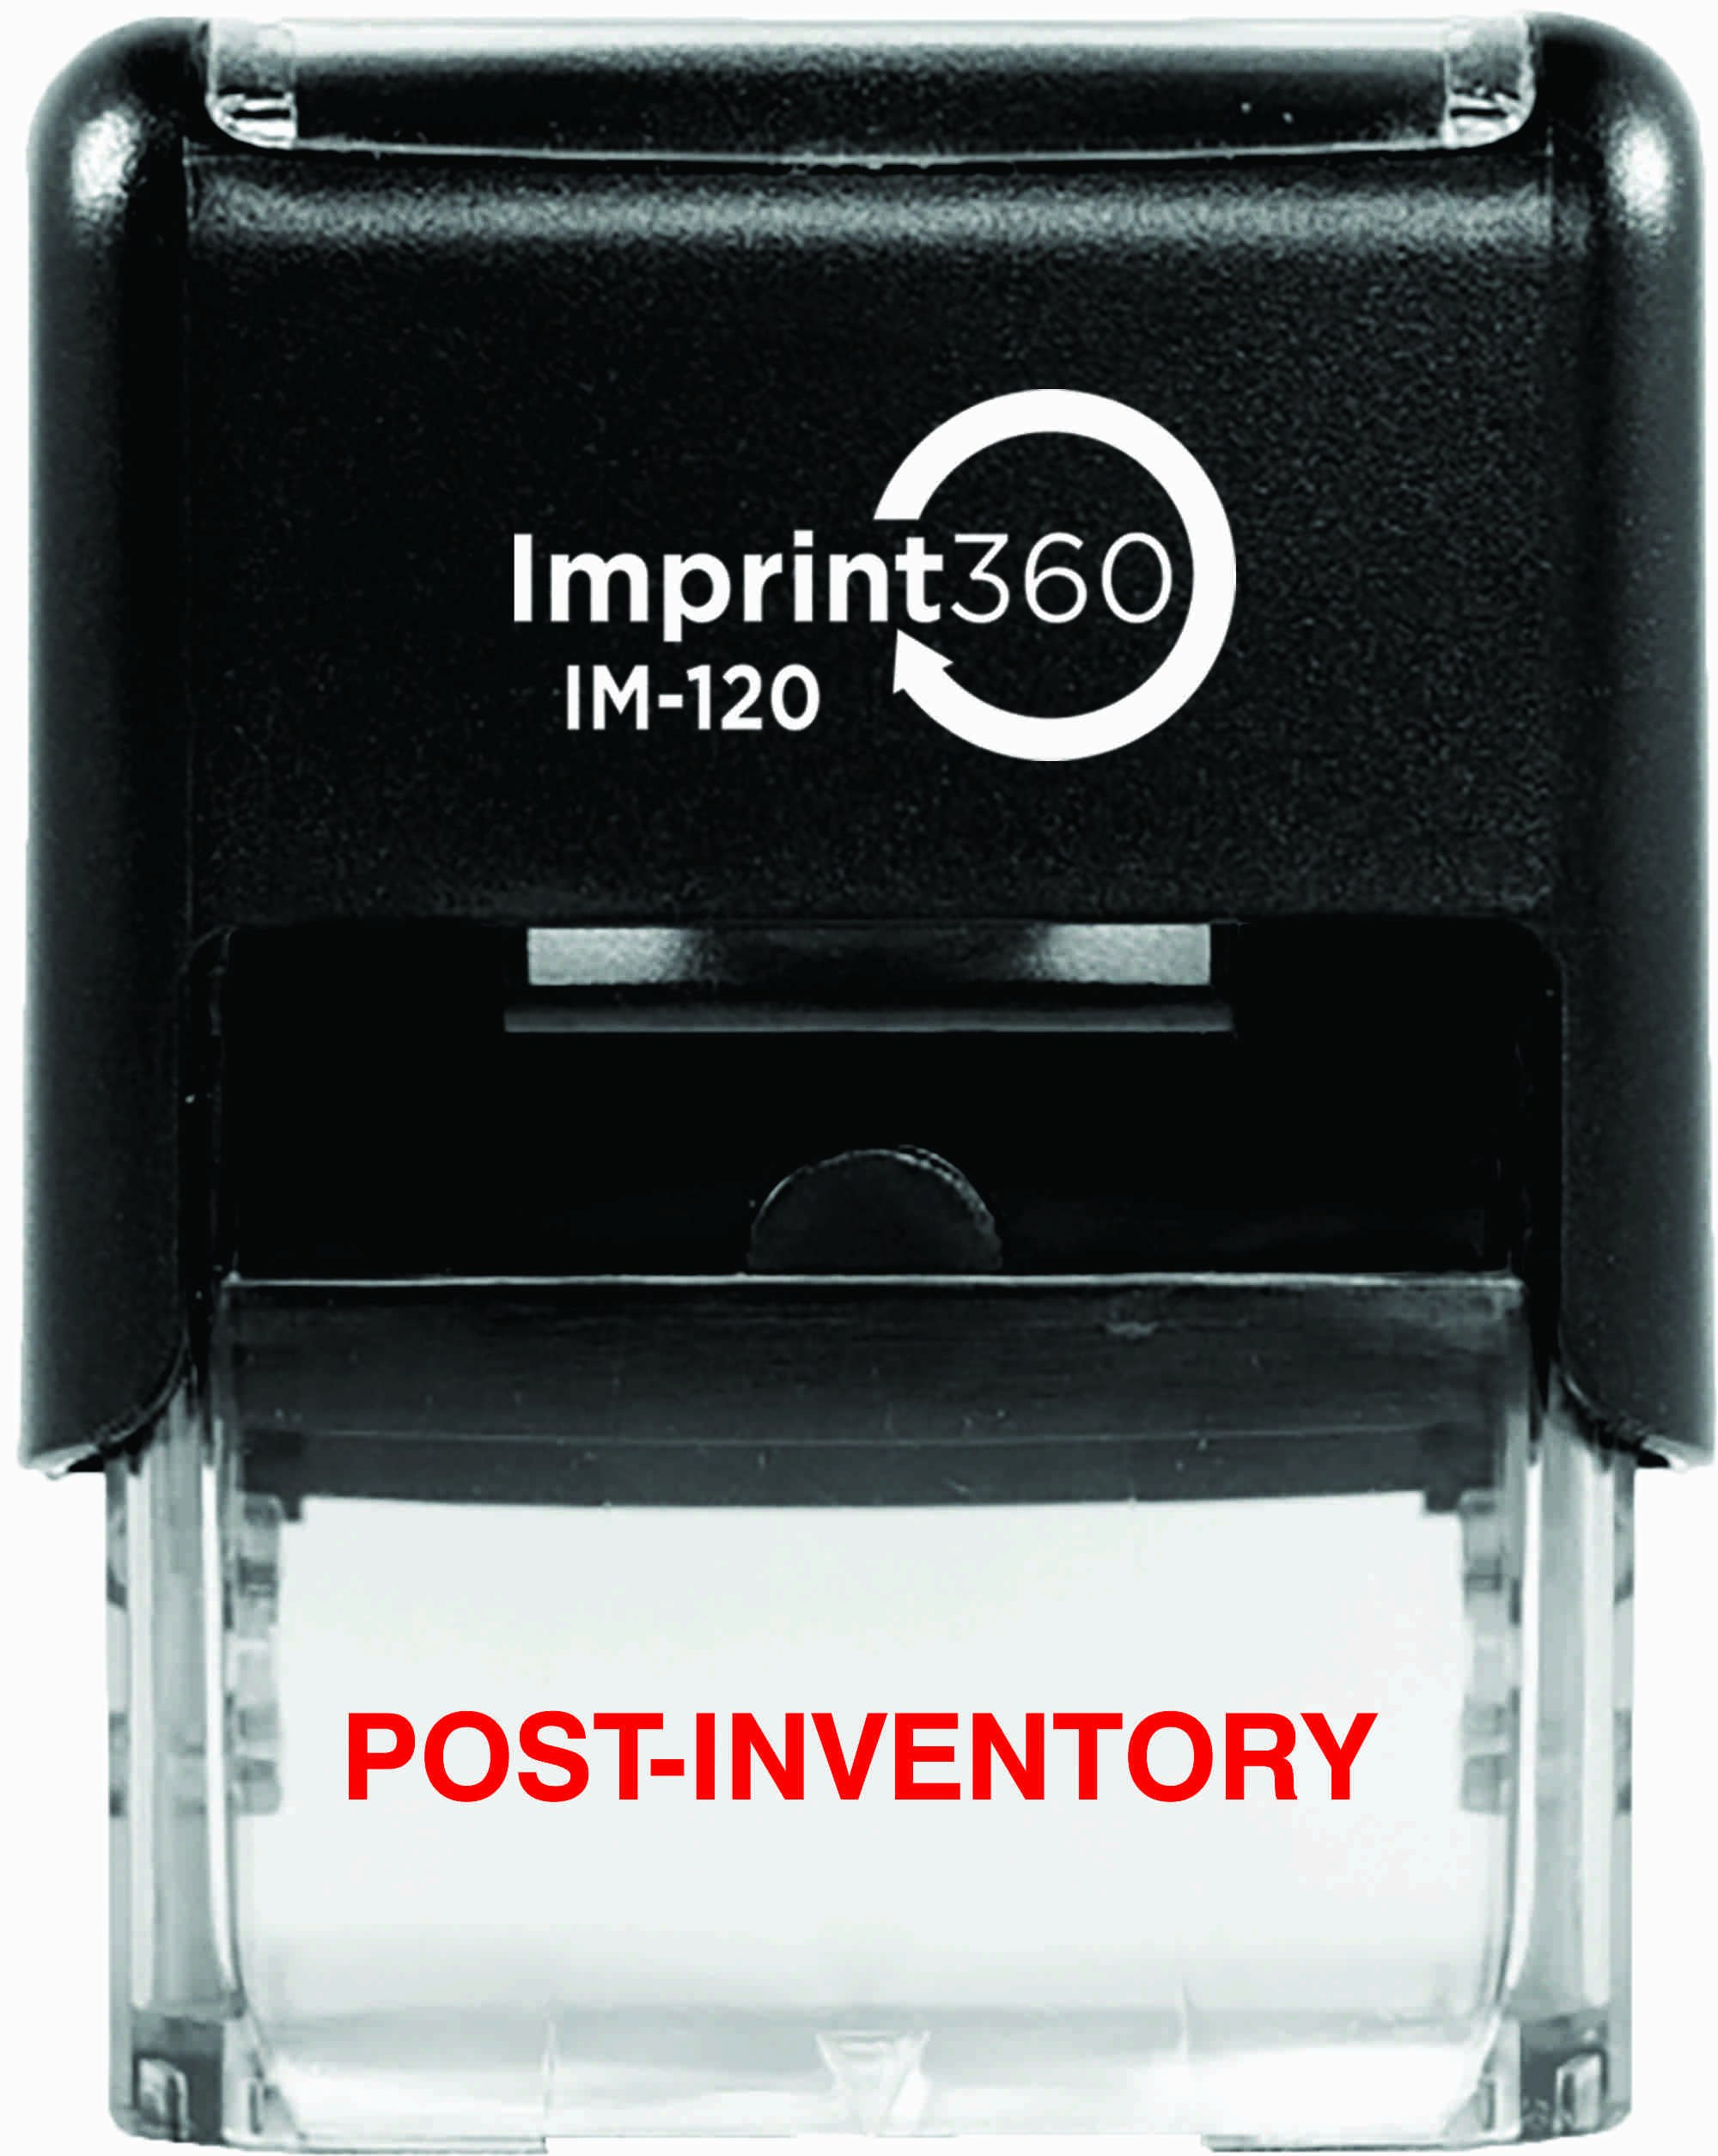 Supply360 AS-IMP1065 - Post-Inventory, Heavy Duty Commerical Quality Self-Inking Rubber Stamp, Red Ink, 9/16'' x 1-1/2'' Impression Size, Laser Engraved for Clean, Precise Imprints